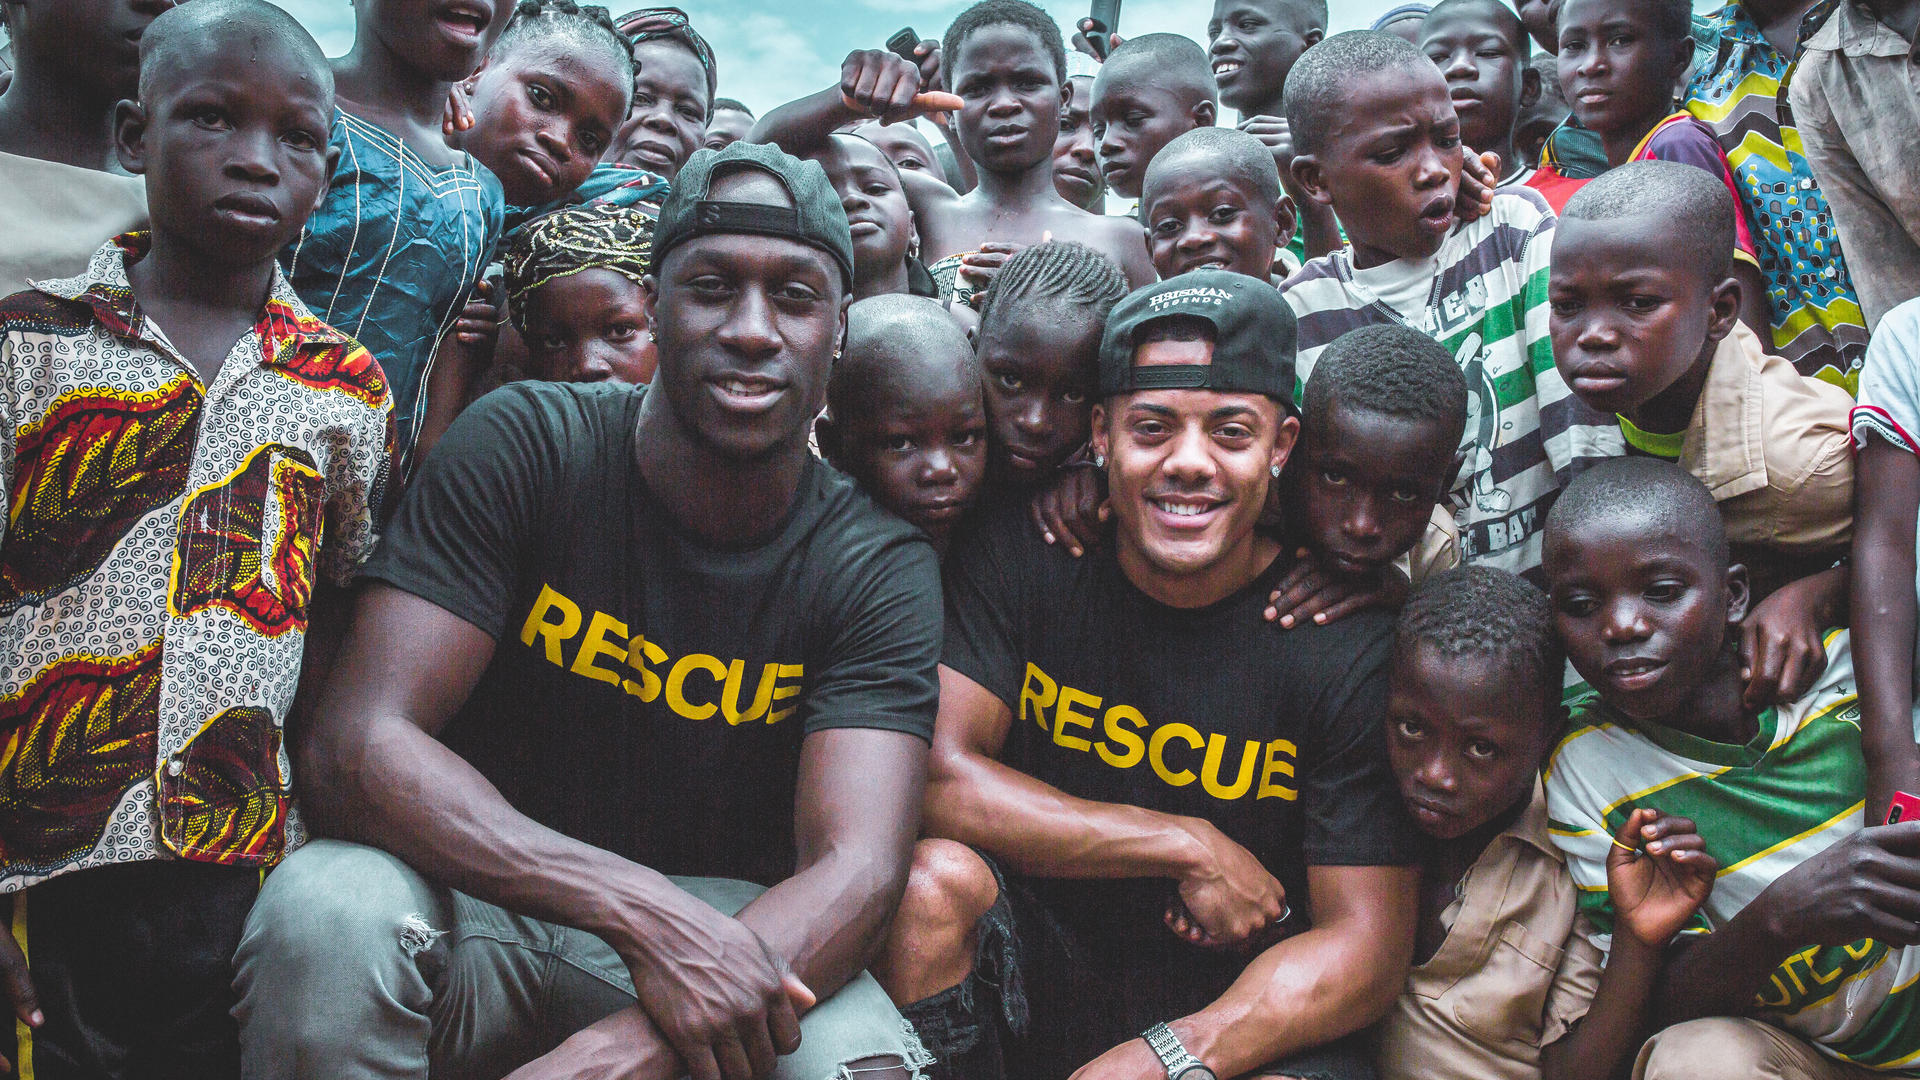 Nico & Vinz with a group of children in Ivory Coast